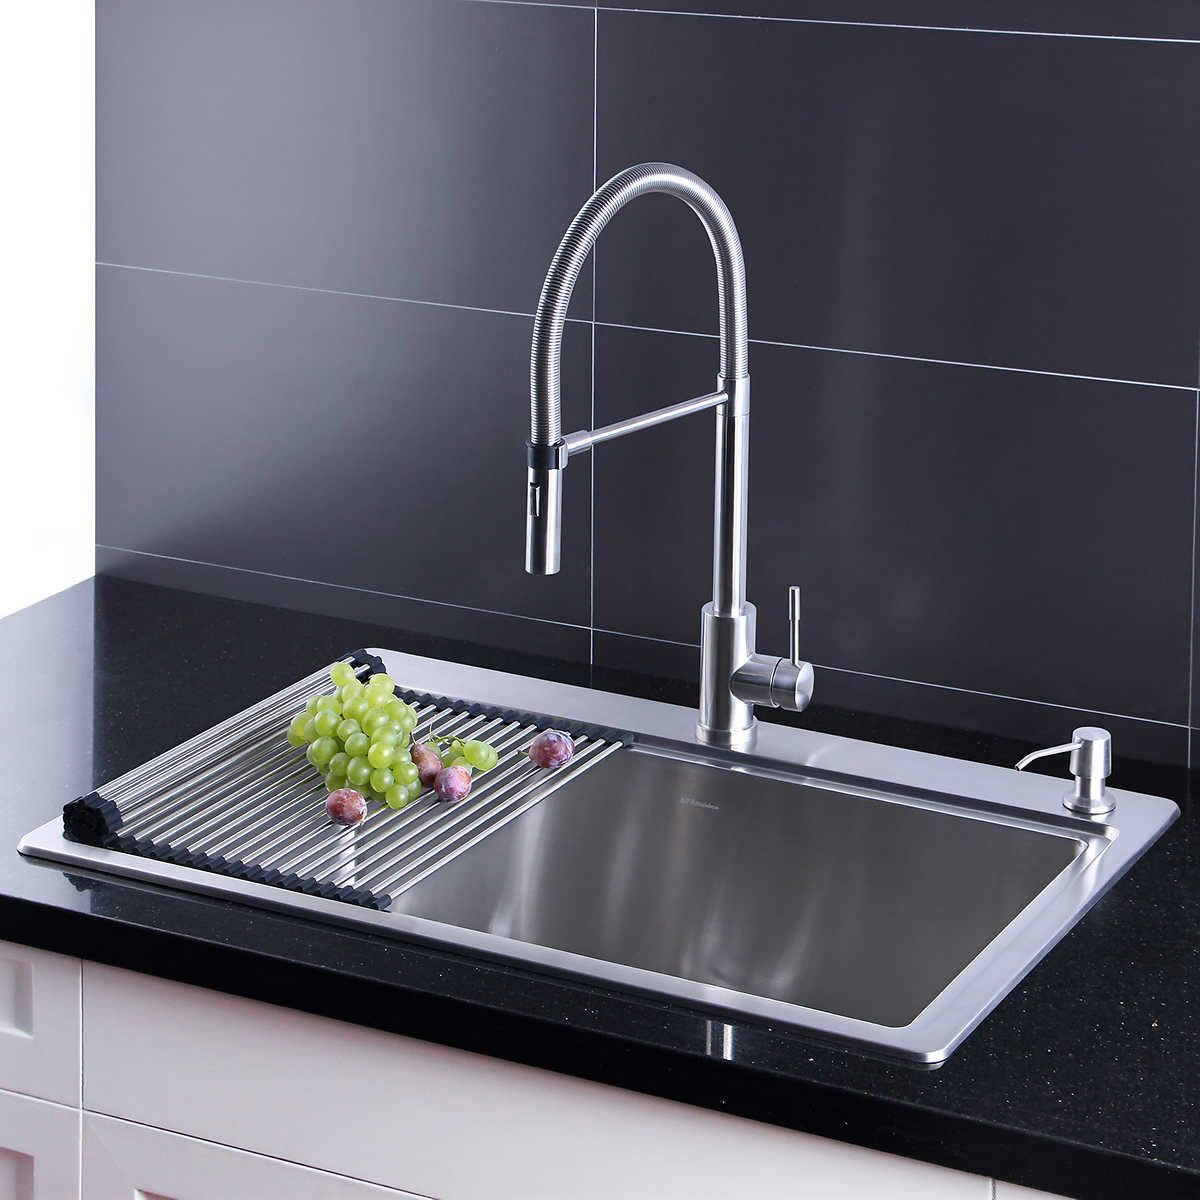 Pin By Rachel Kelly On Home Improvement Ideas Pro Faucet Sink